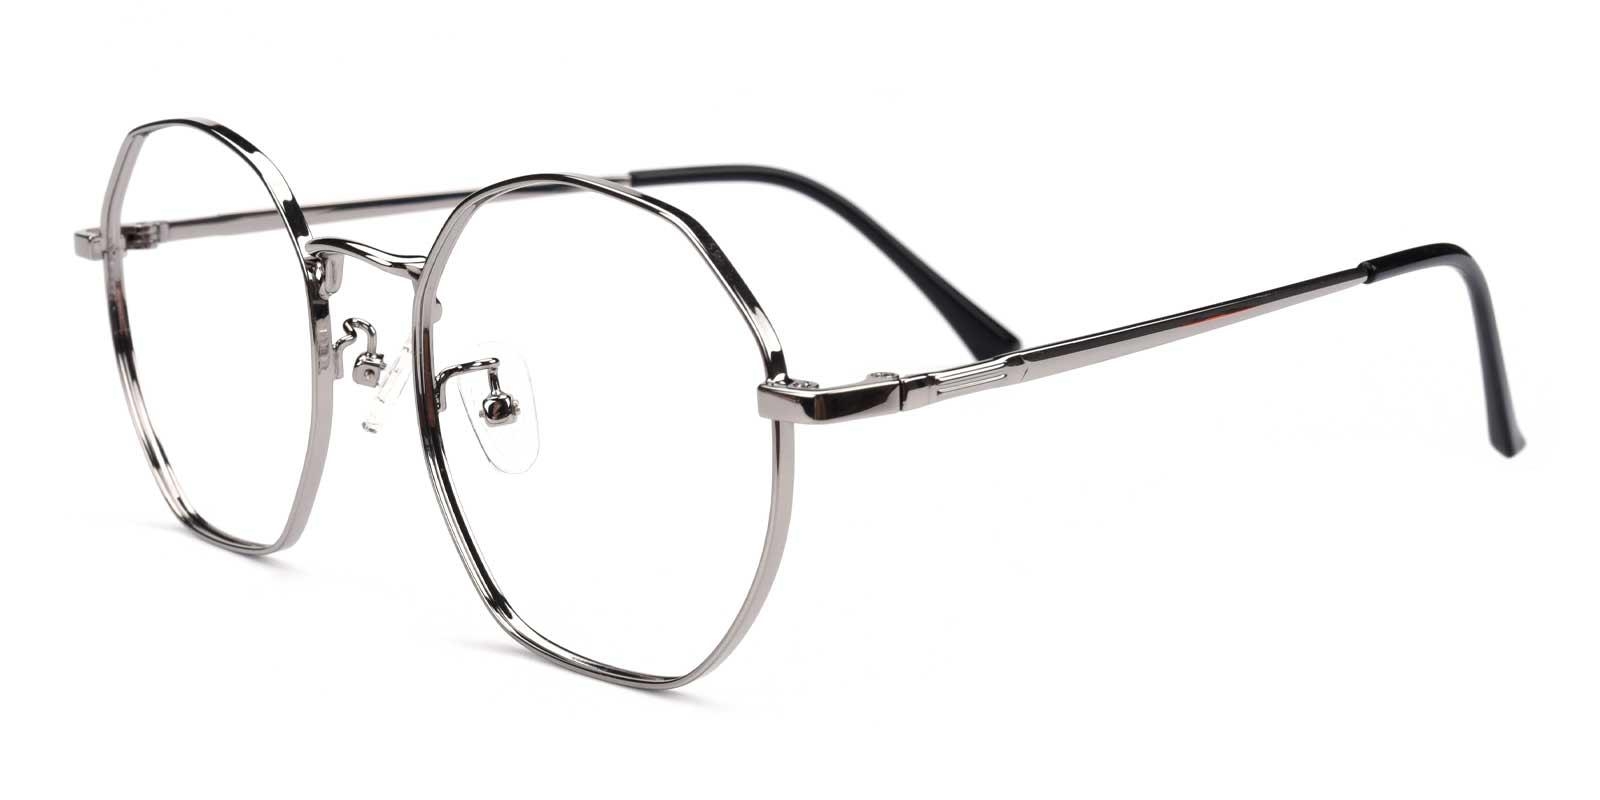 Loren-Silver-Geometric-Metal-Eyeglasses-additional1